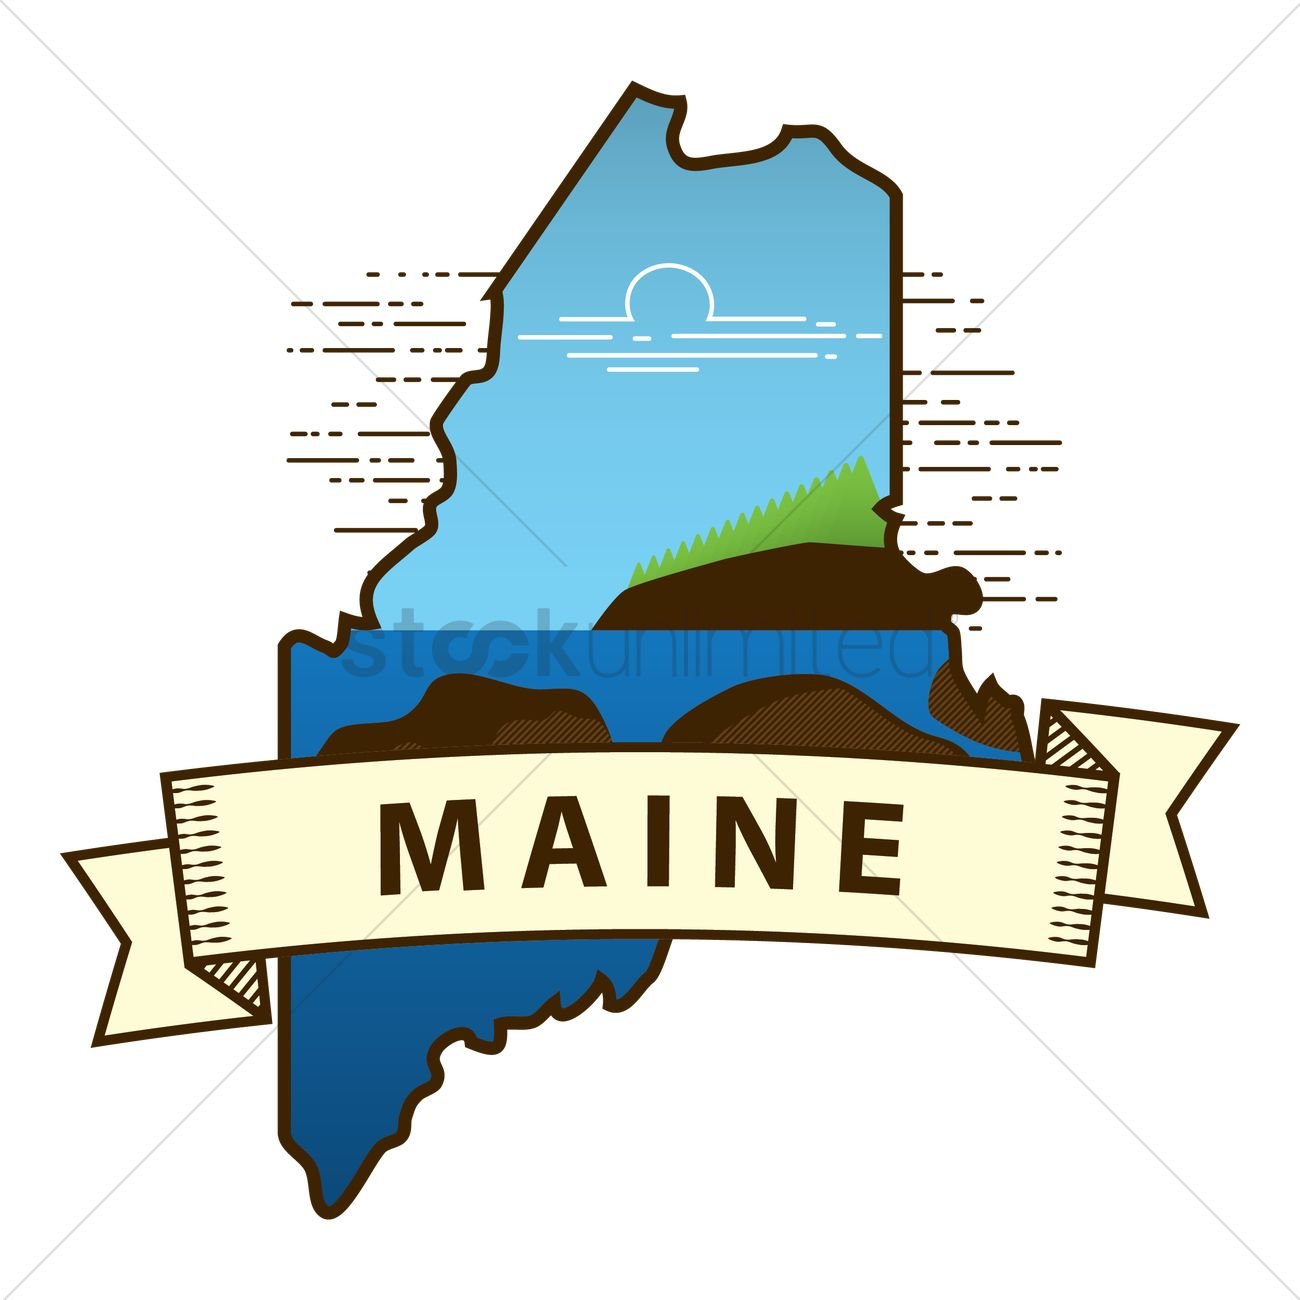 Maine state map Vector Image - 1564463 | StockUnlimited